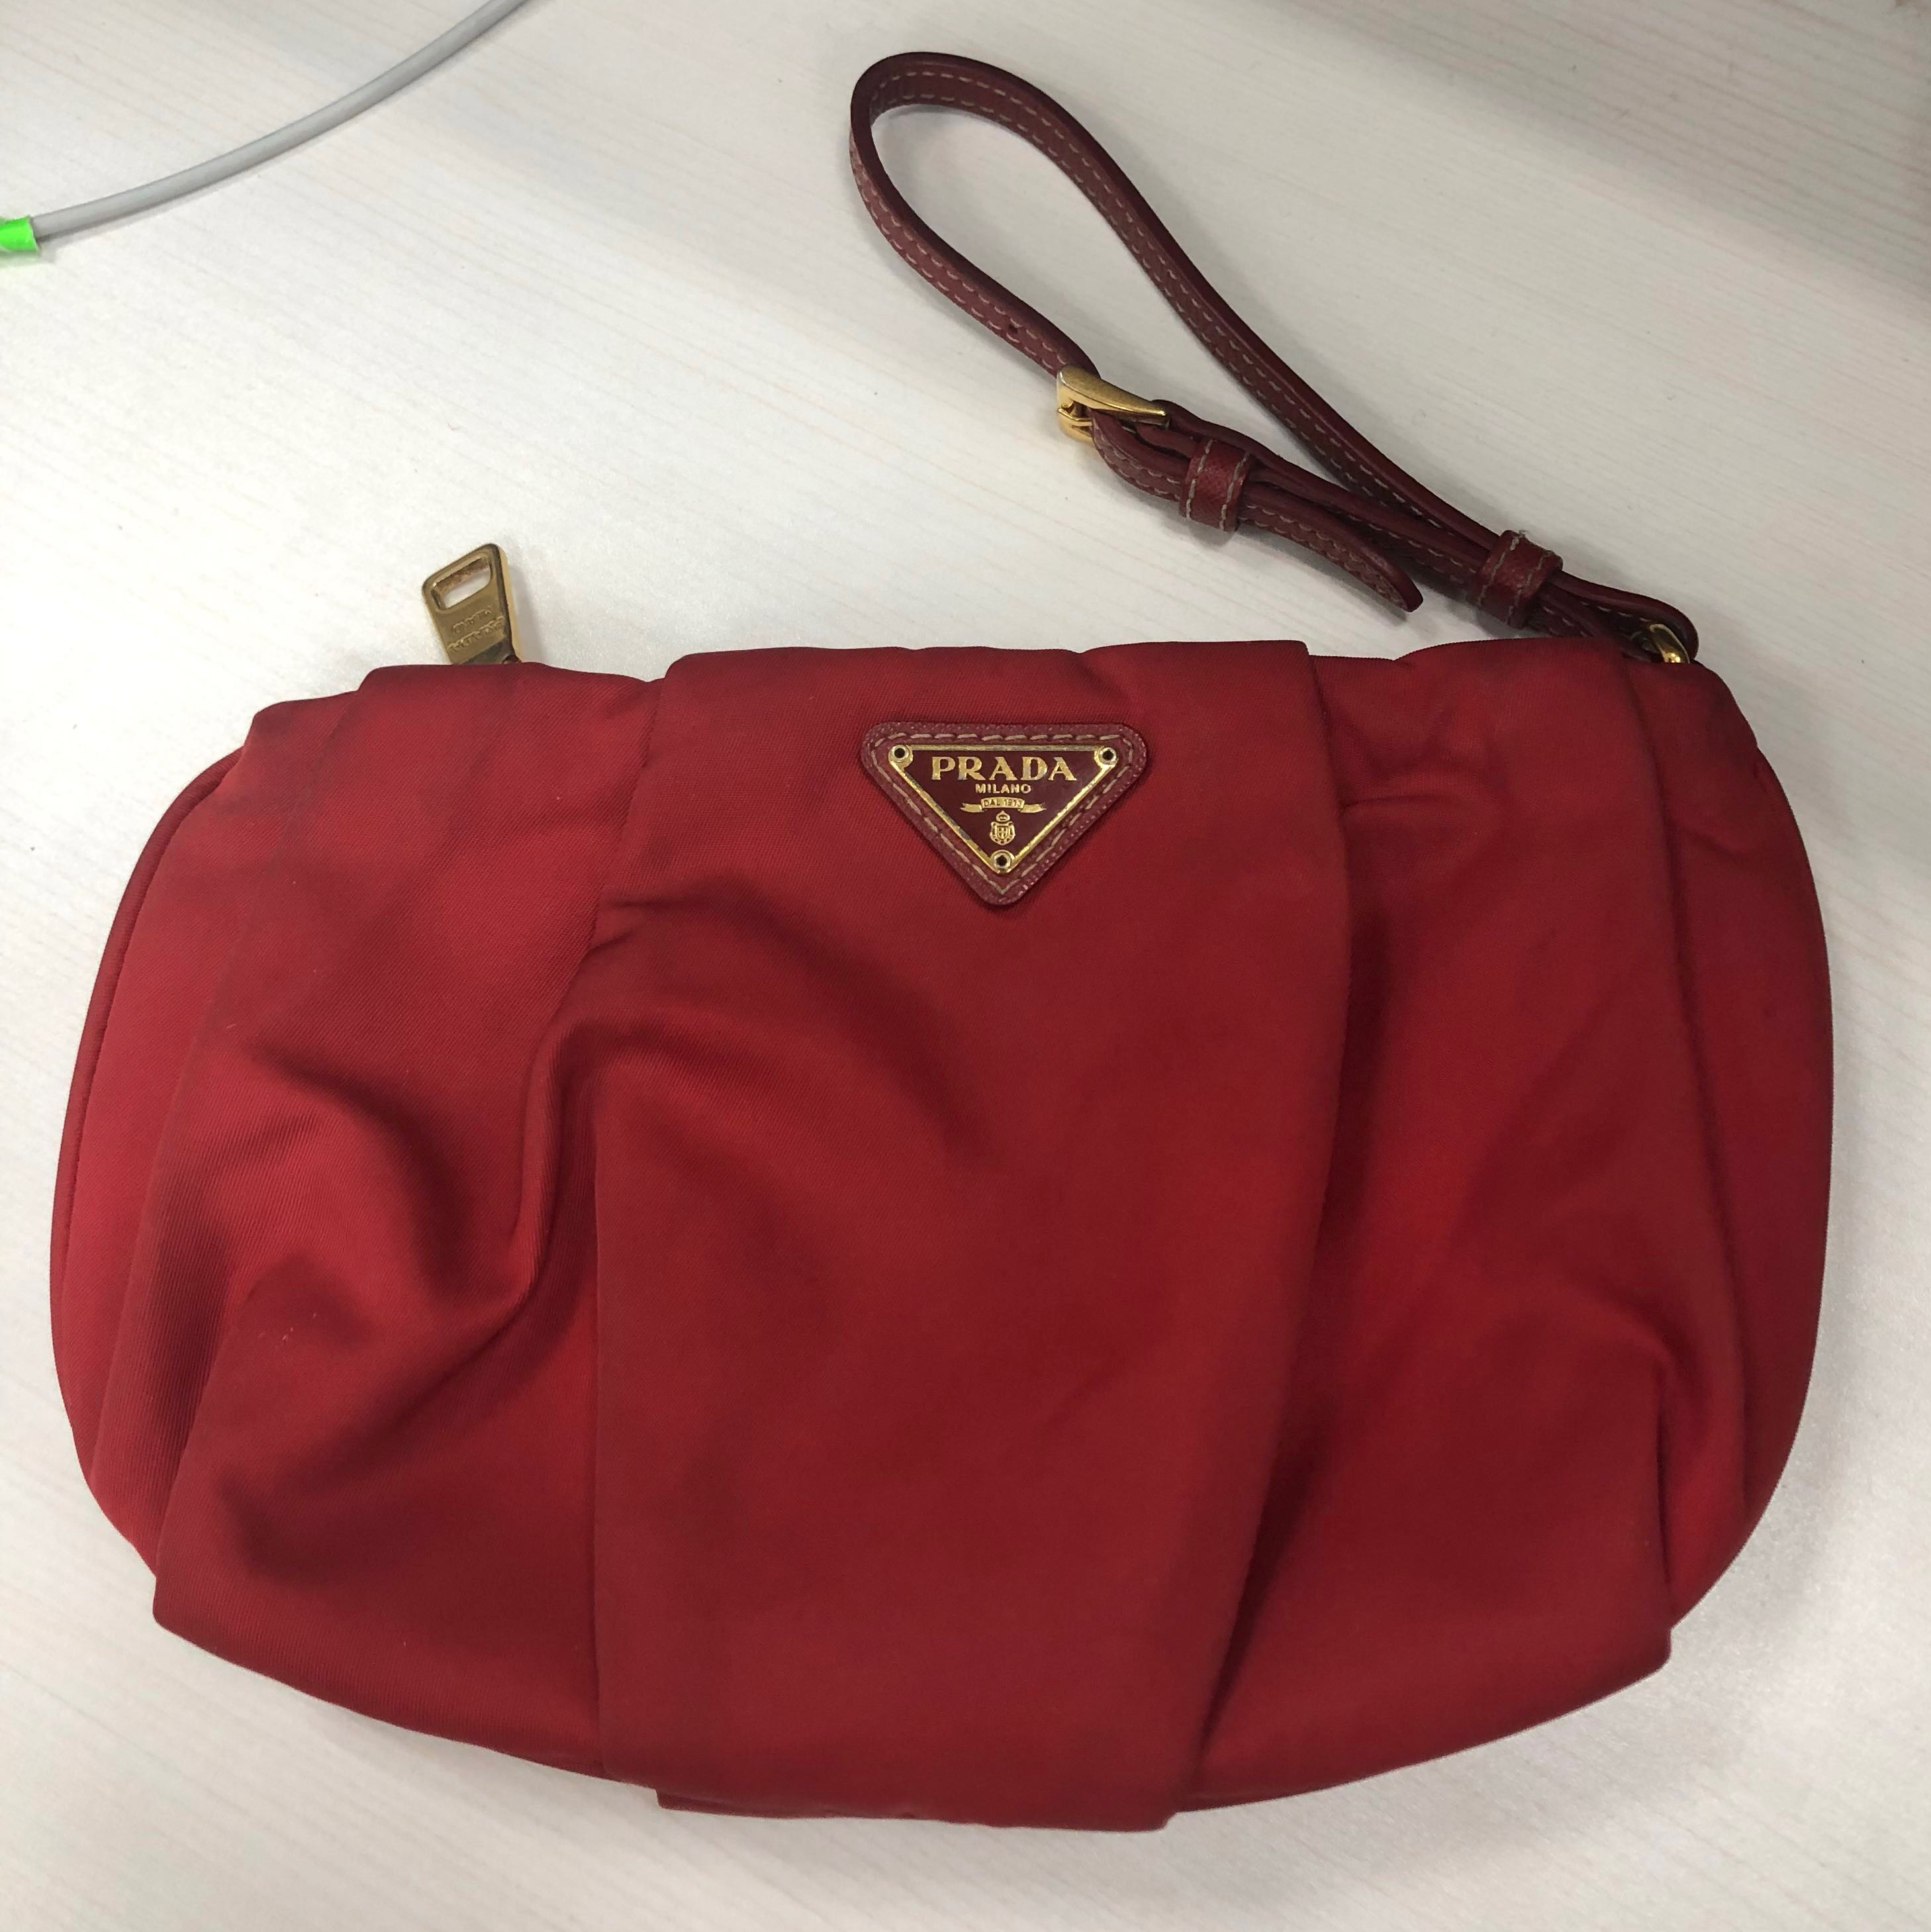 3a3ca2125de2 Prada Wristlet, Luxury, Bags & Wallets, Others on Carousell